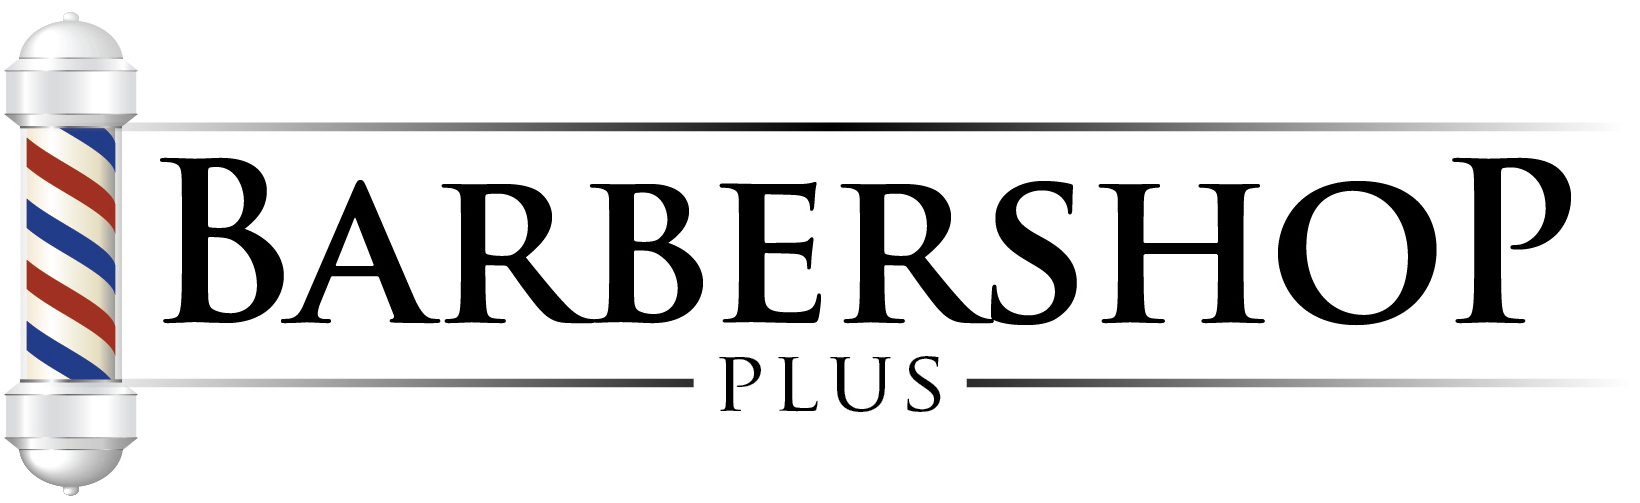 BarberShop Plus Logo